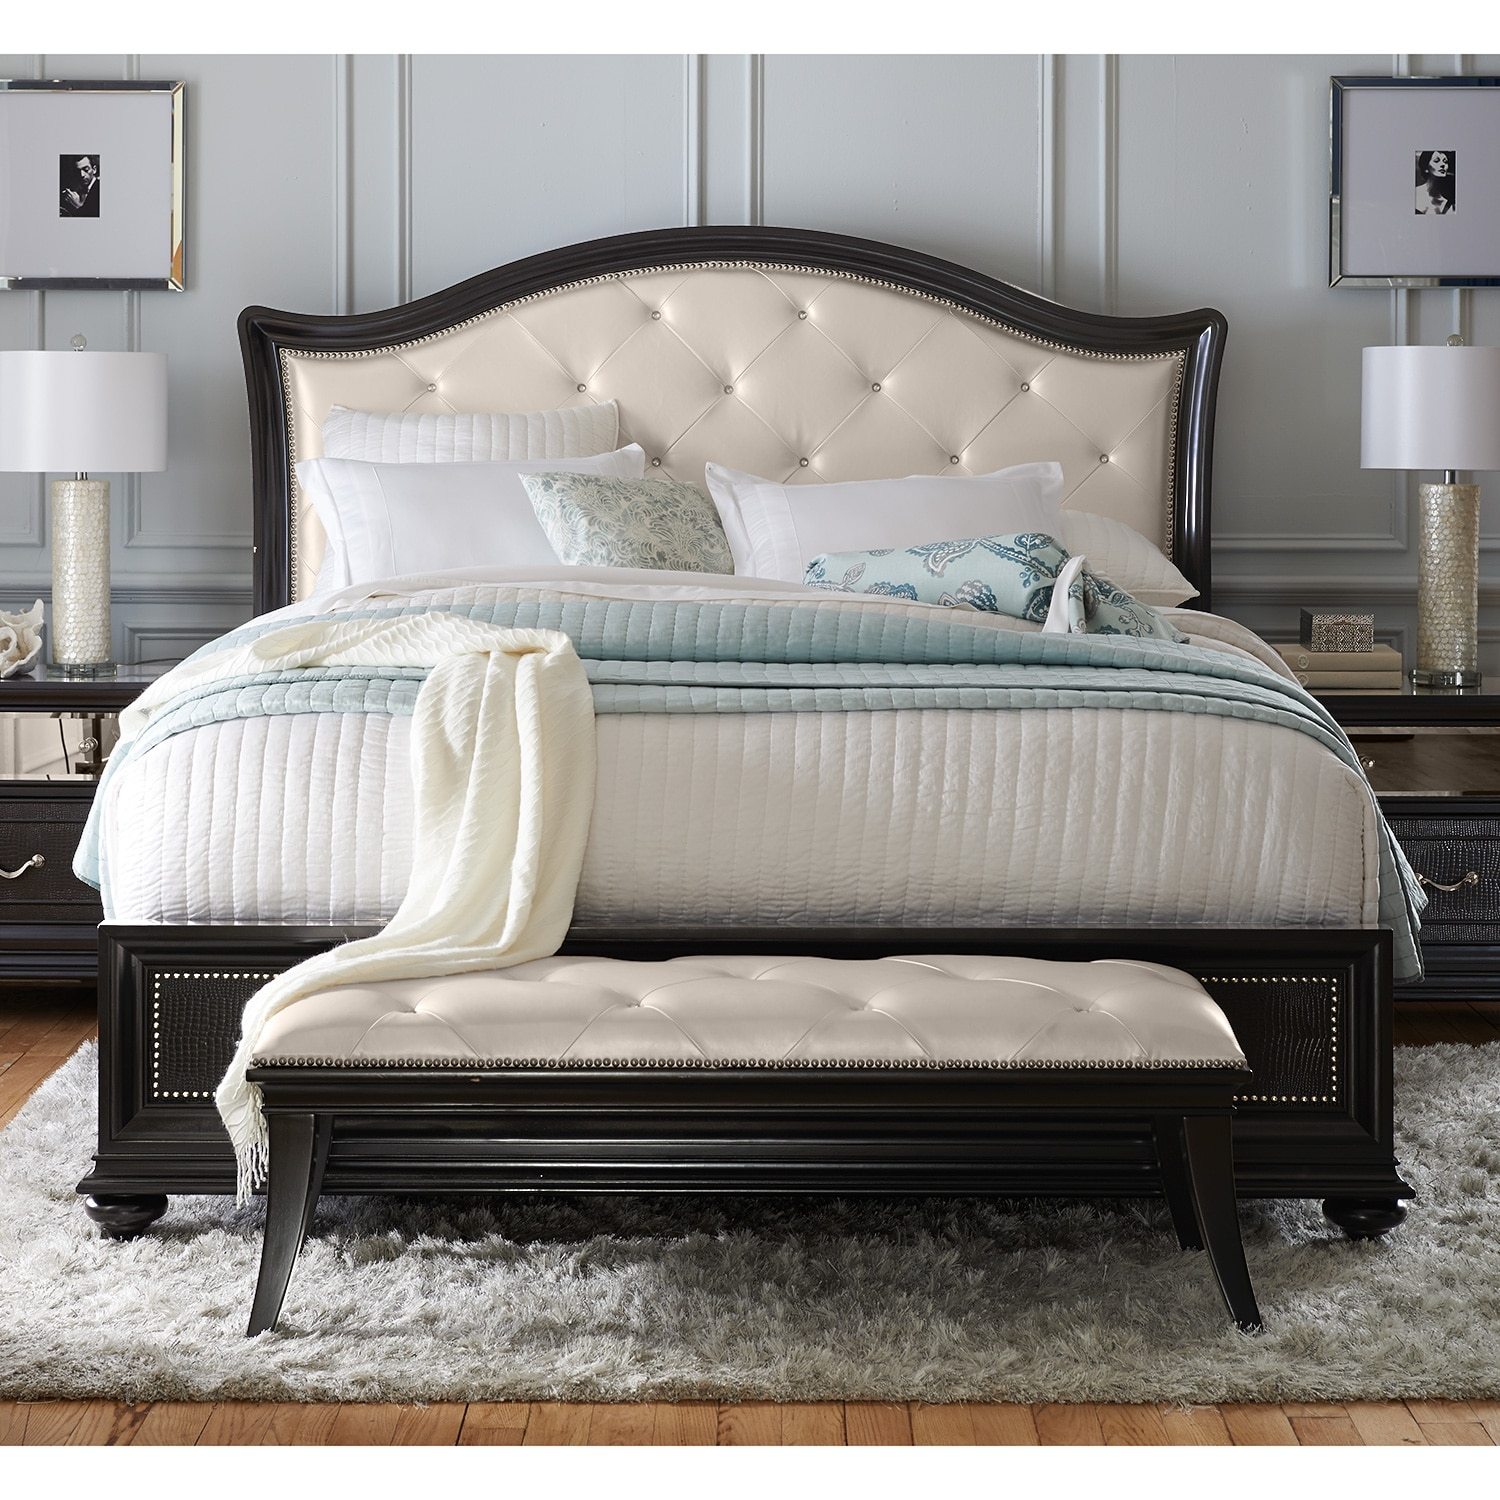 47 Beautiful Photos Of Design Decisions Glamorous Value City Bedroom Furniture King Beds Wtsenates Info